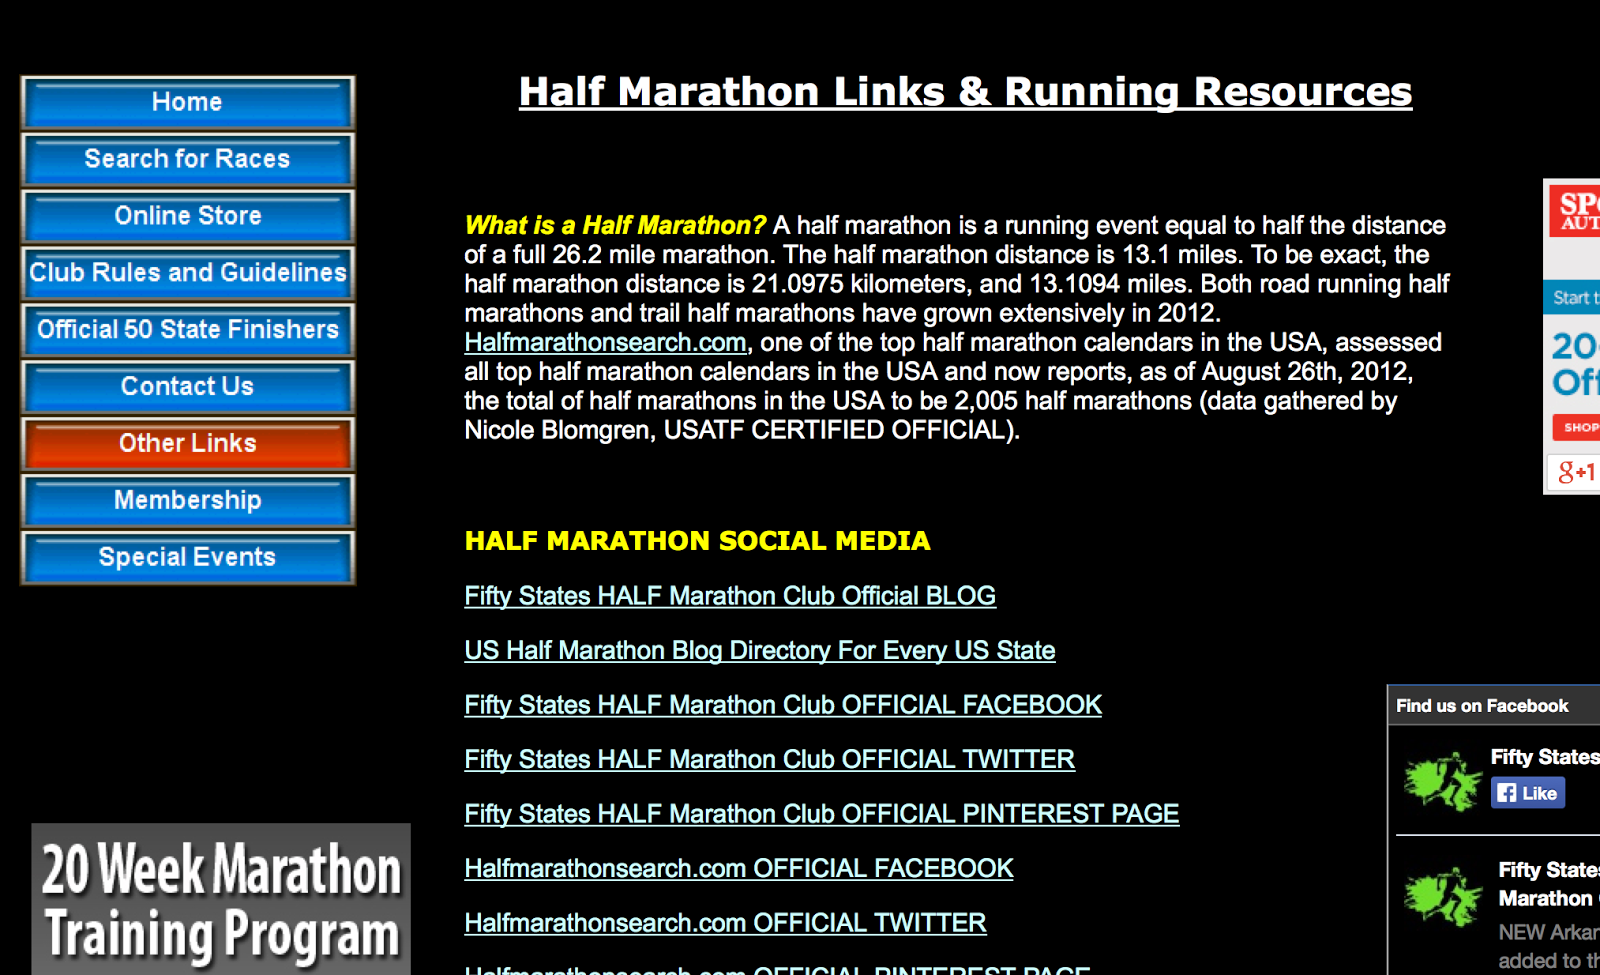 Half Marathon Resources